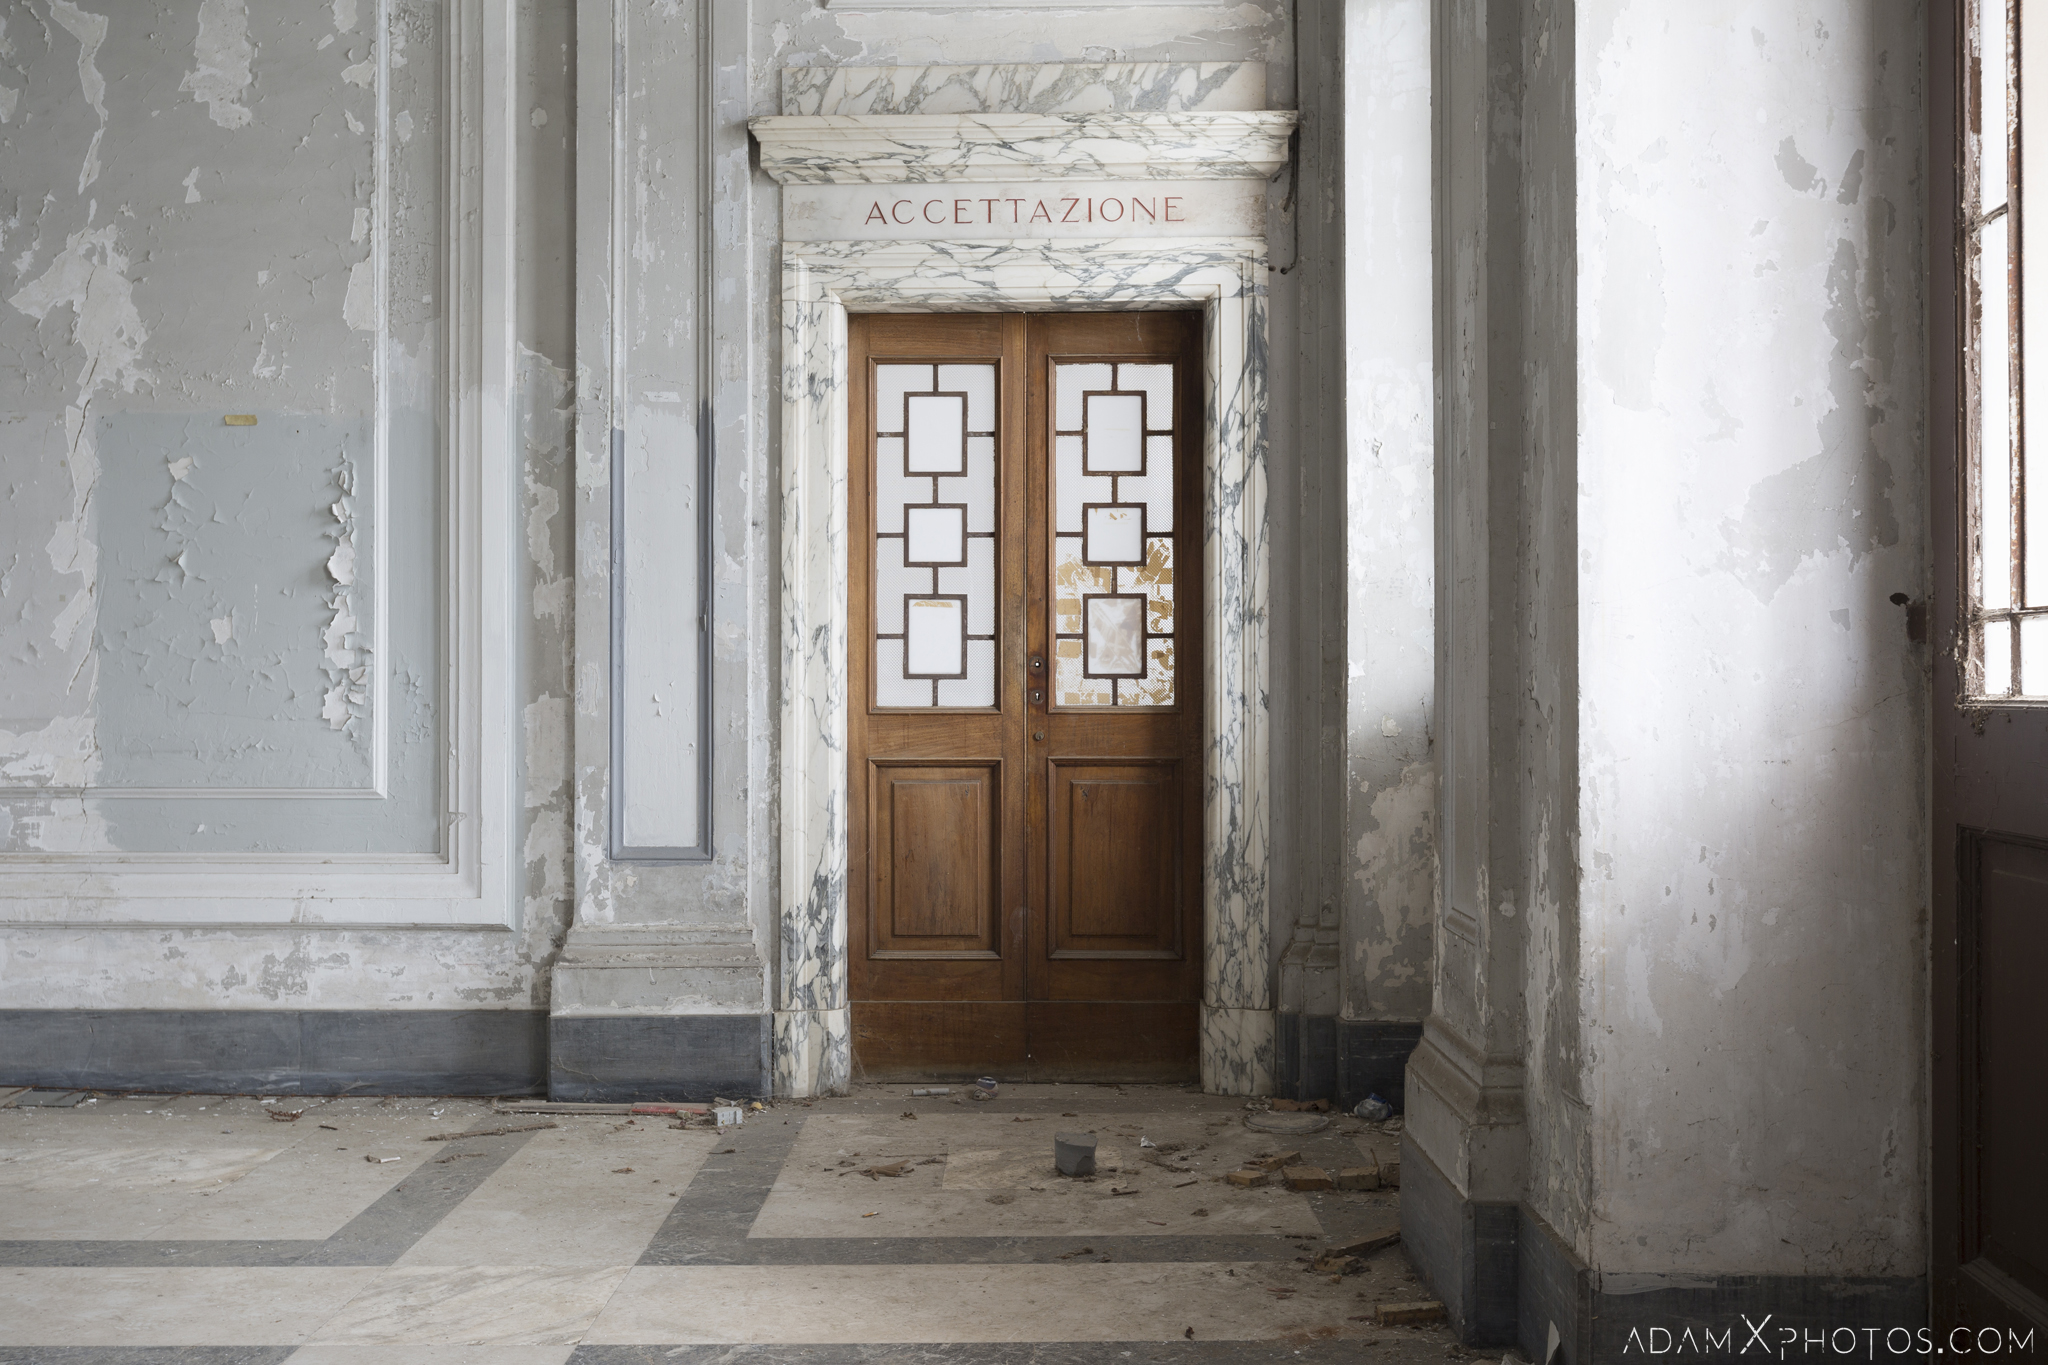 reception marble door accettazione ospedale psichiatrico di q manicomio di q asylum hospital Urbex Adam X Urban Exploration Italy Italia Access 2016 Abandoned decay lost forgotten Secca Security infiltration derelict location creepy haunting eerie